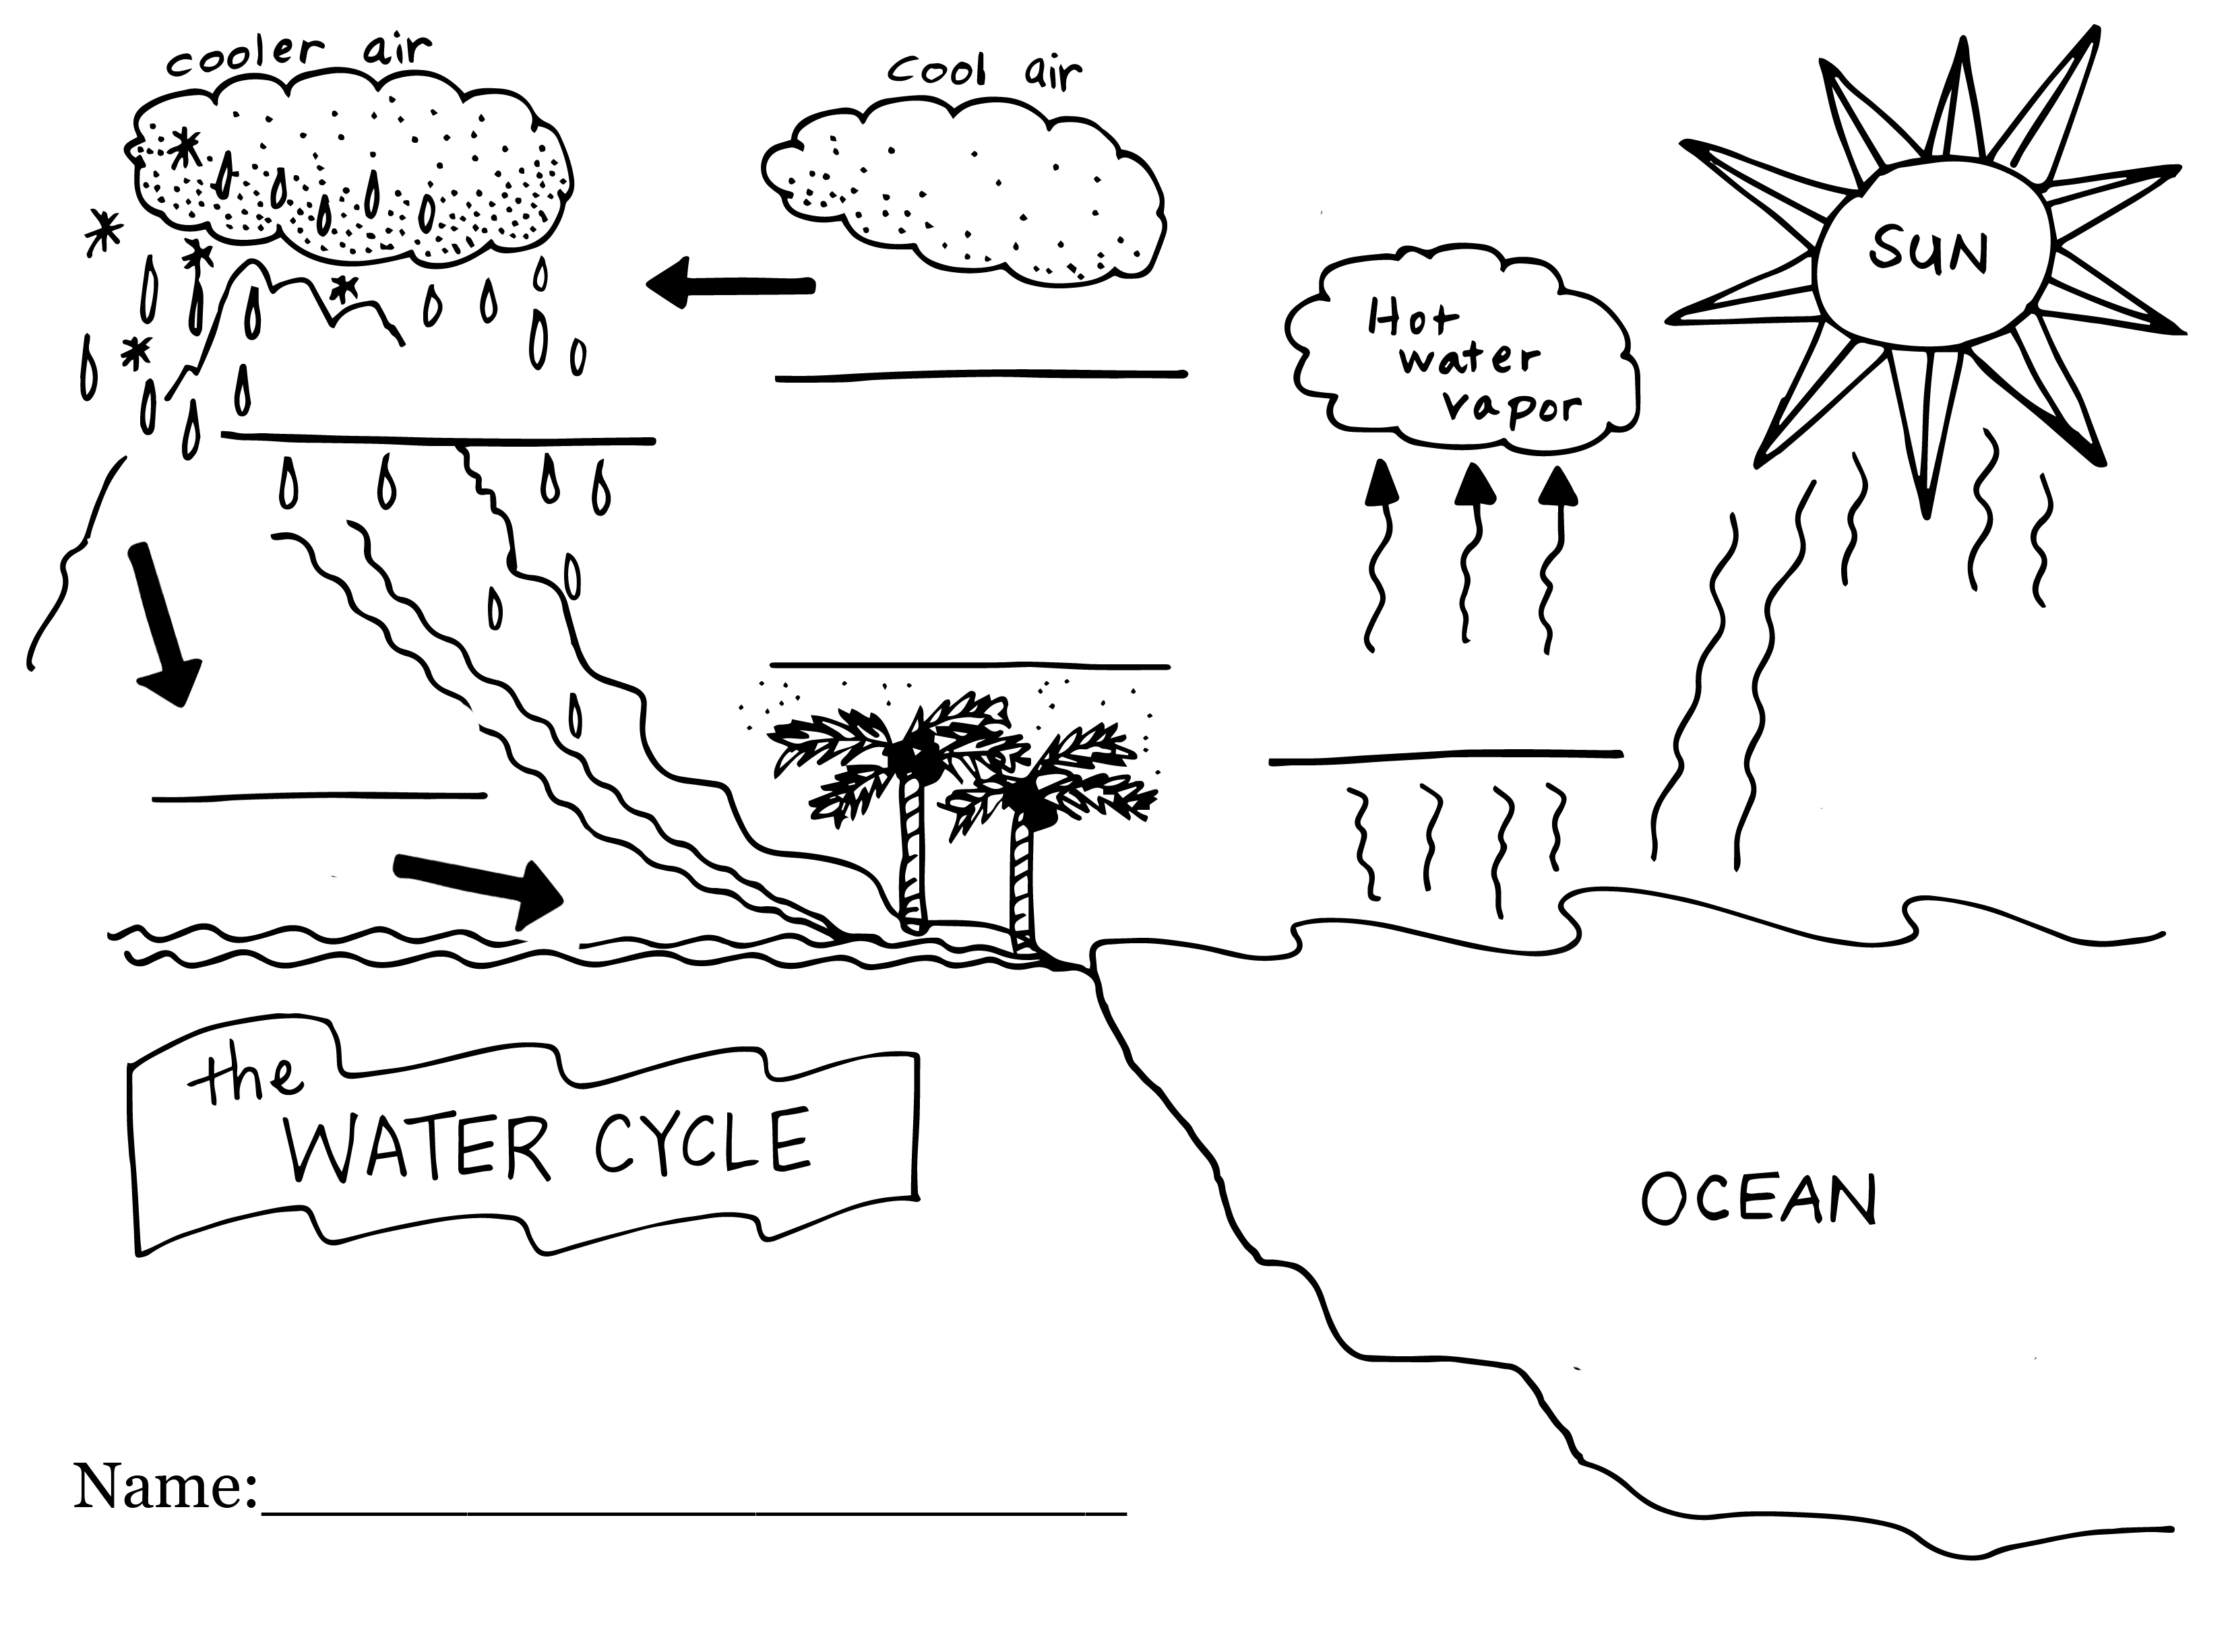 water cycle diagram blank gm headlight wiring meganghurley  ed 554 computers and technology in the classroom